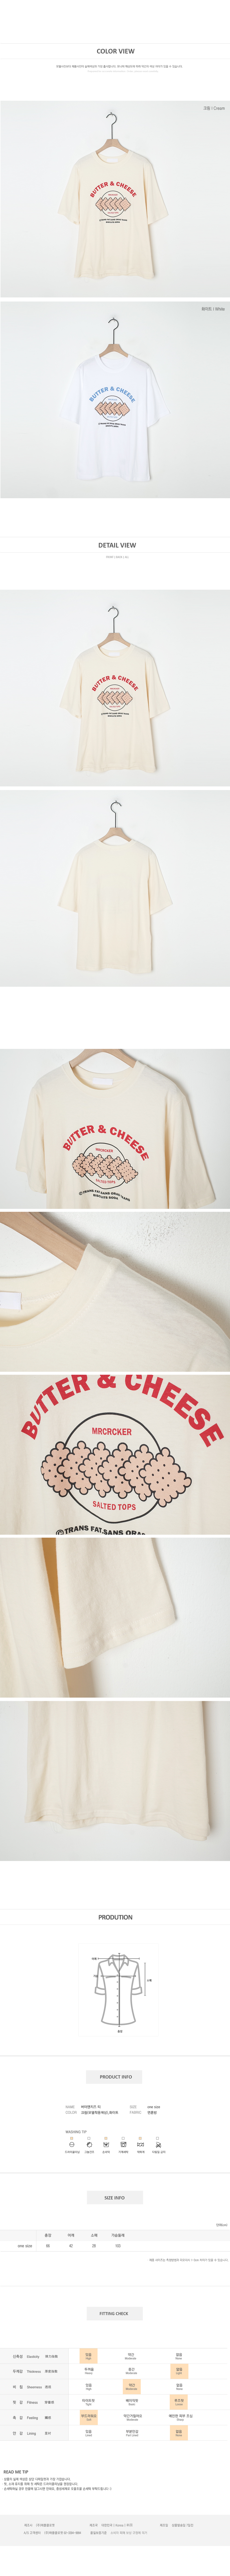 Butter and Cheese Tee